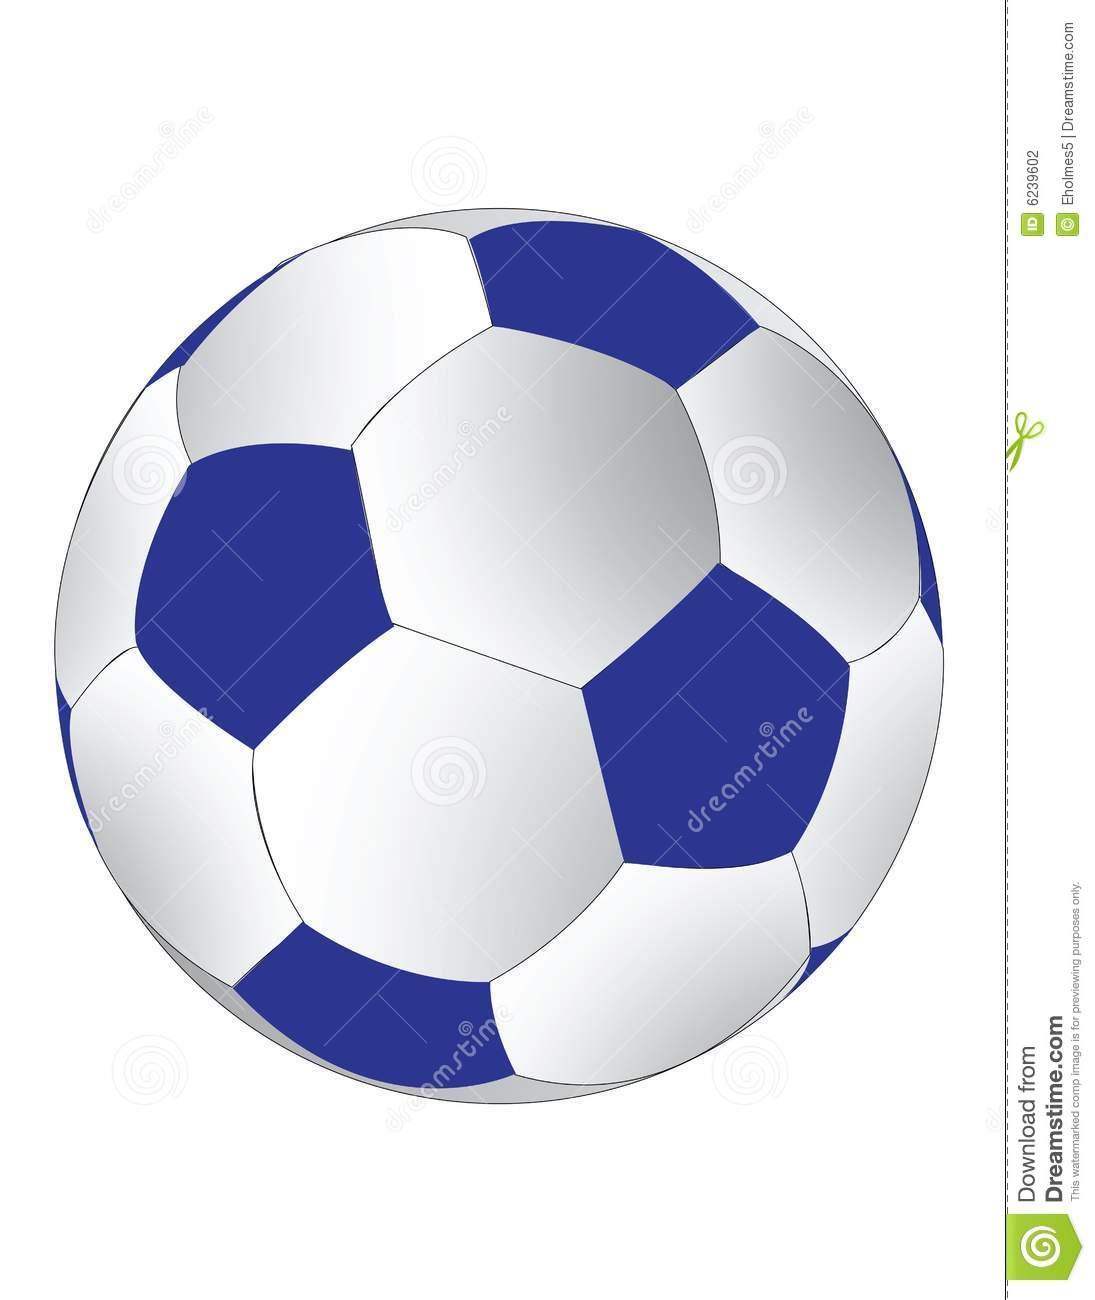 Blue And White Soccerball Stock Photography - Image: 6239602